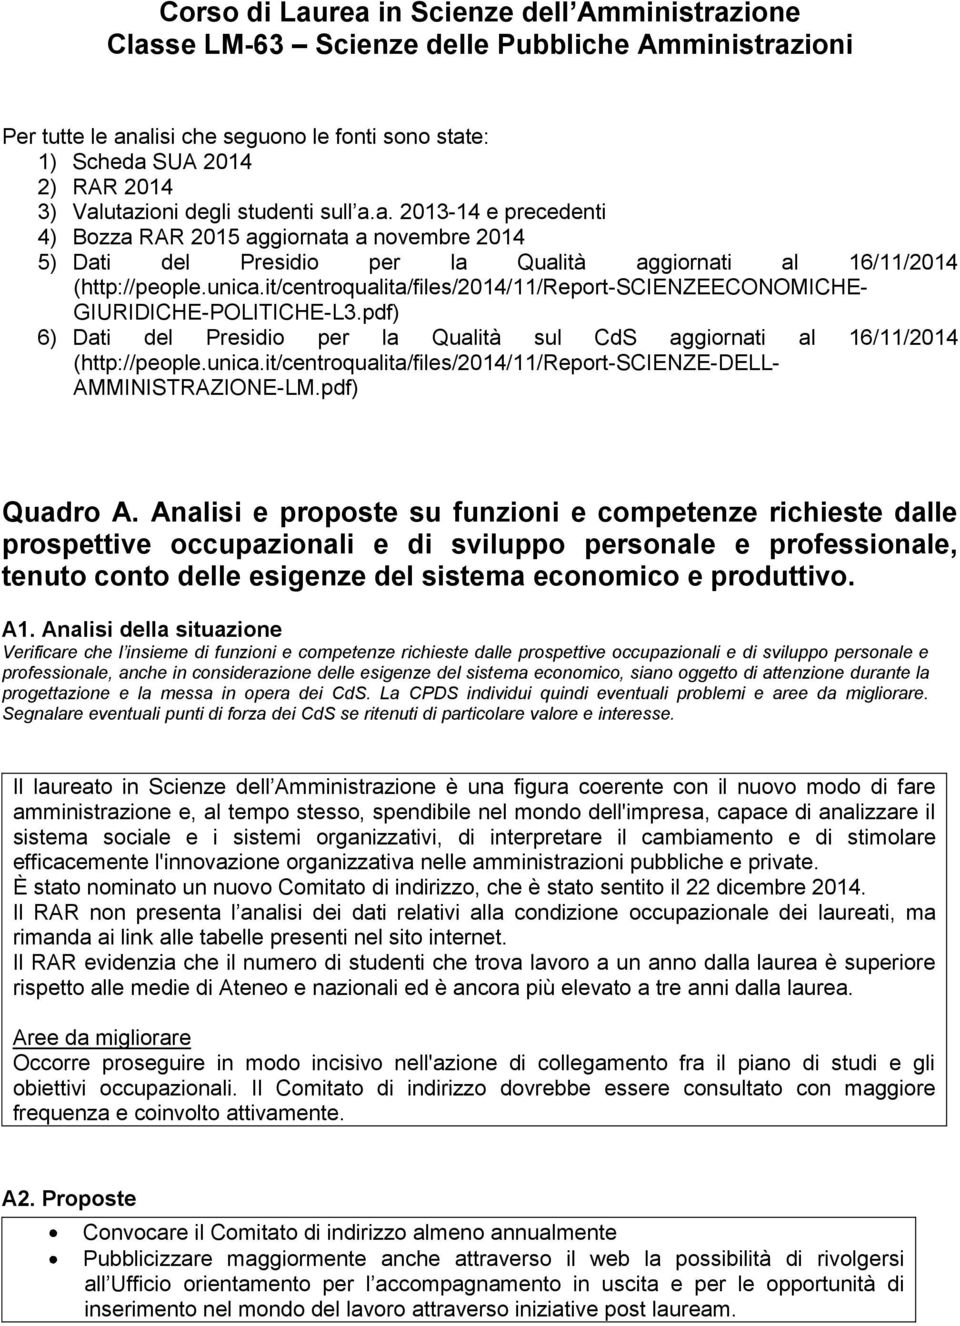 it/centroqualita/files/2014/11/report-scienzeeconomiche- GIURIDICHE-POLITICHE-L3.pdf) 6) Dati del Presidio per la Qualità sul CdS aggiornati al 16/11/2014 (http://people.unica.